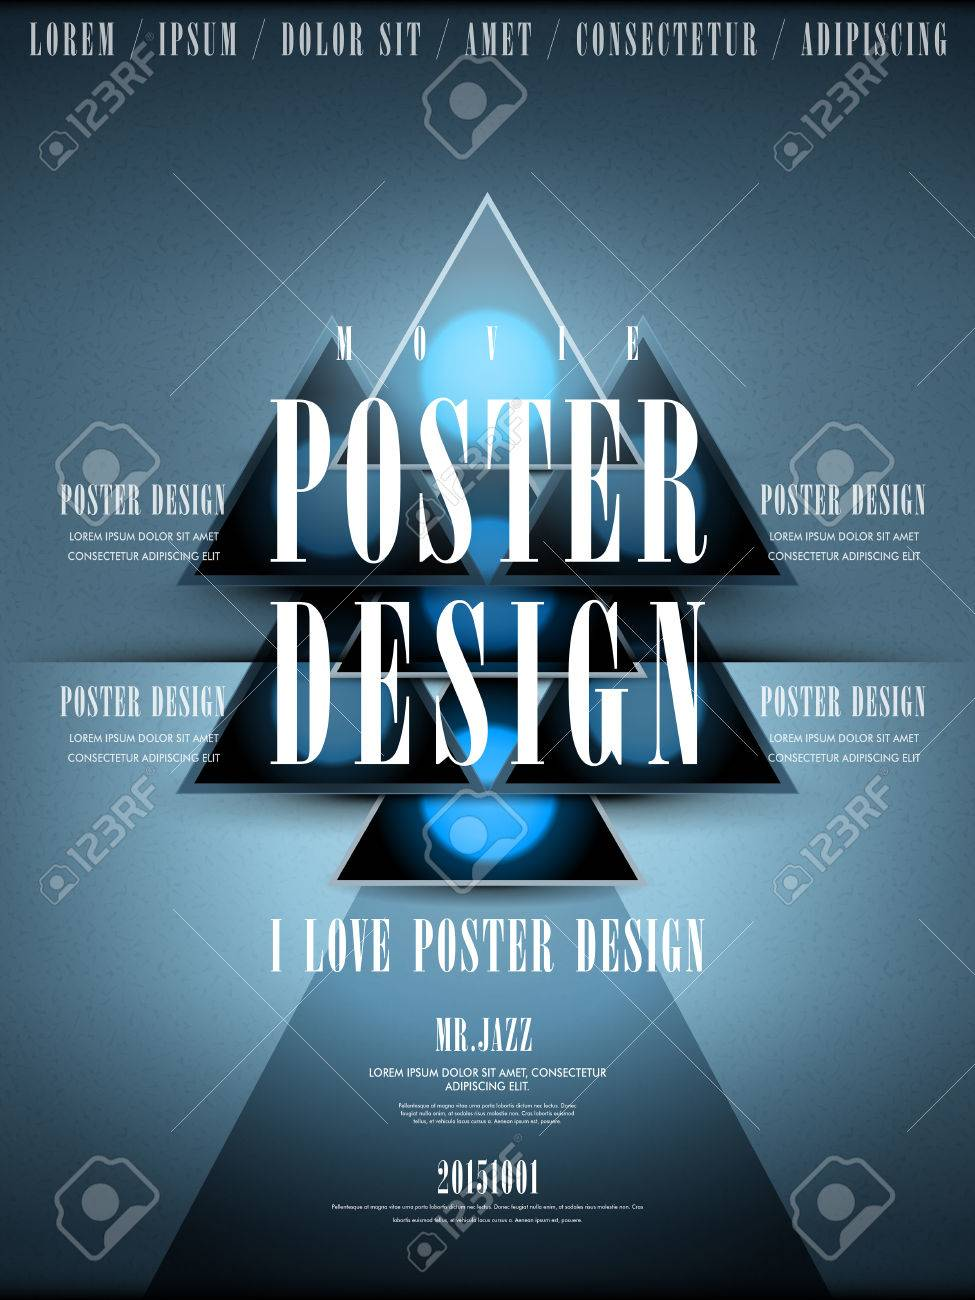 Modern Movie Poster Design Template With Geometric Elements Royalty